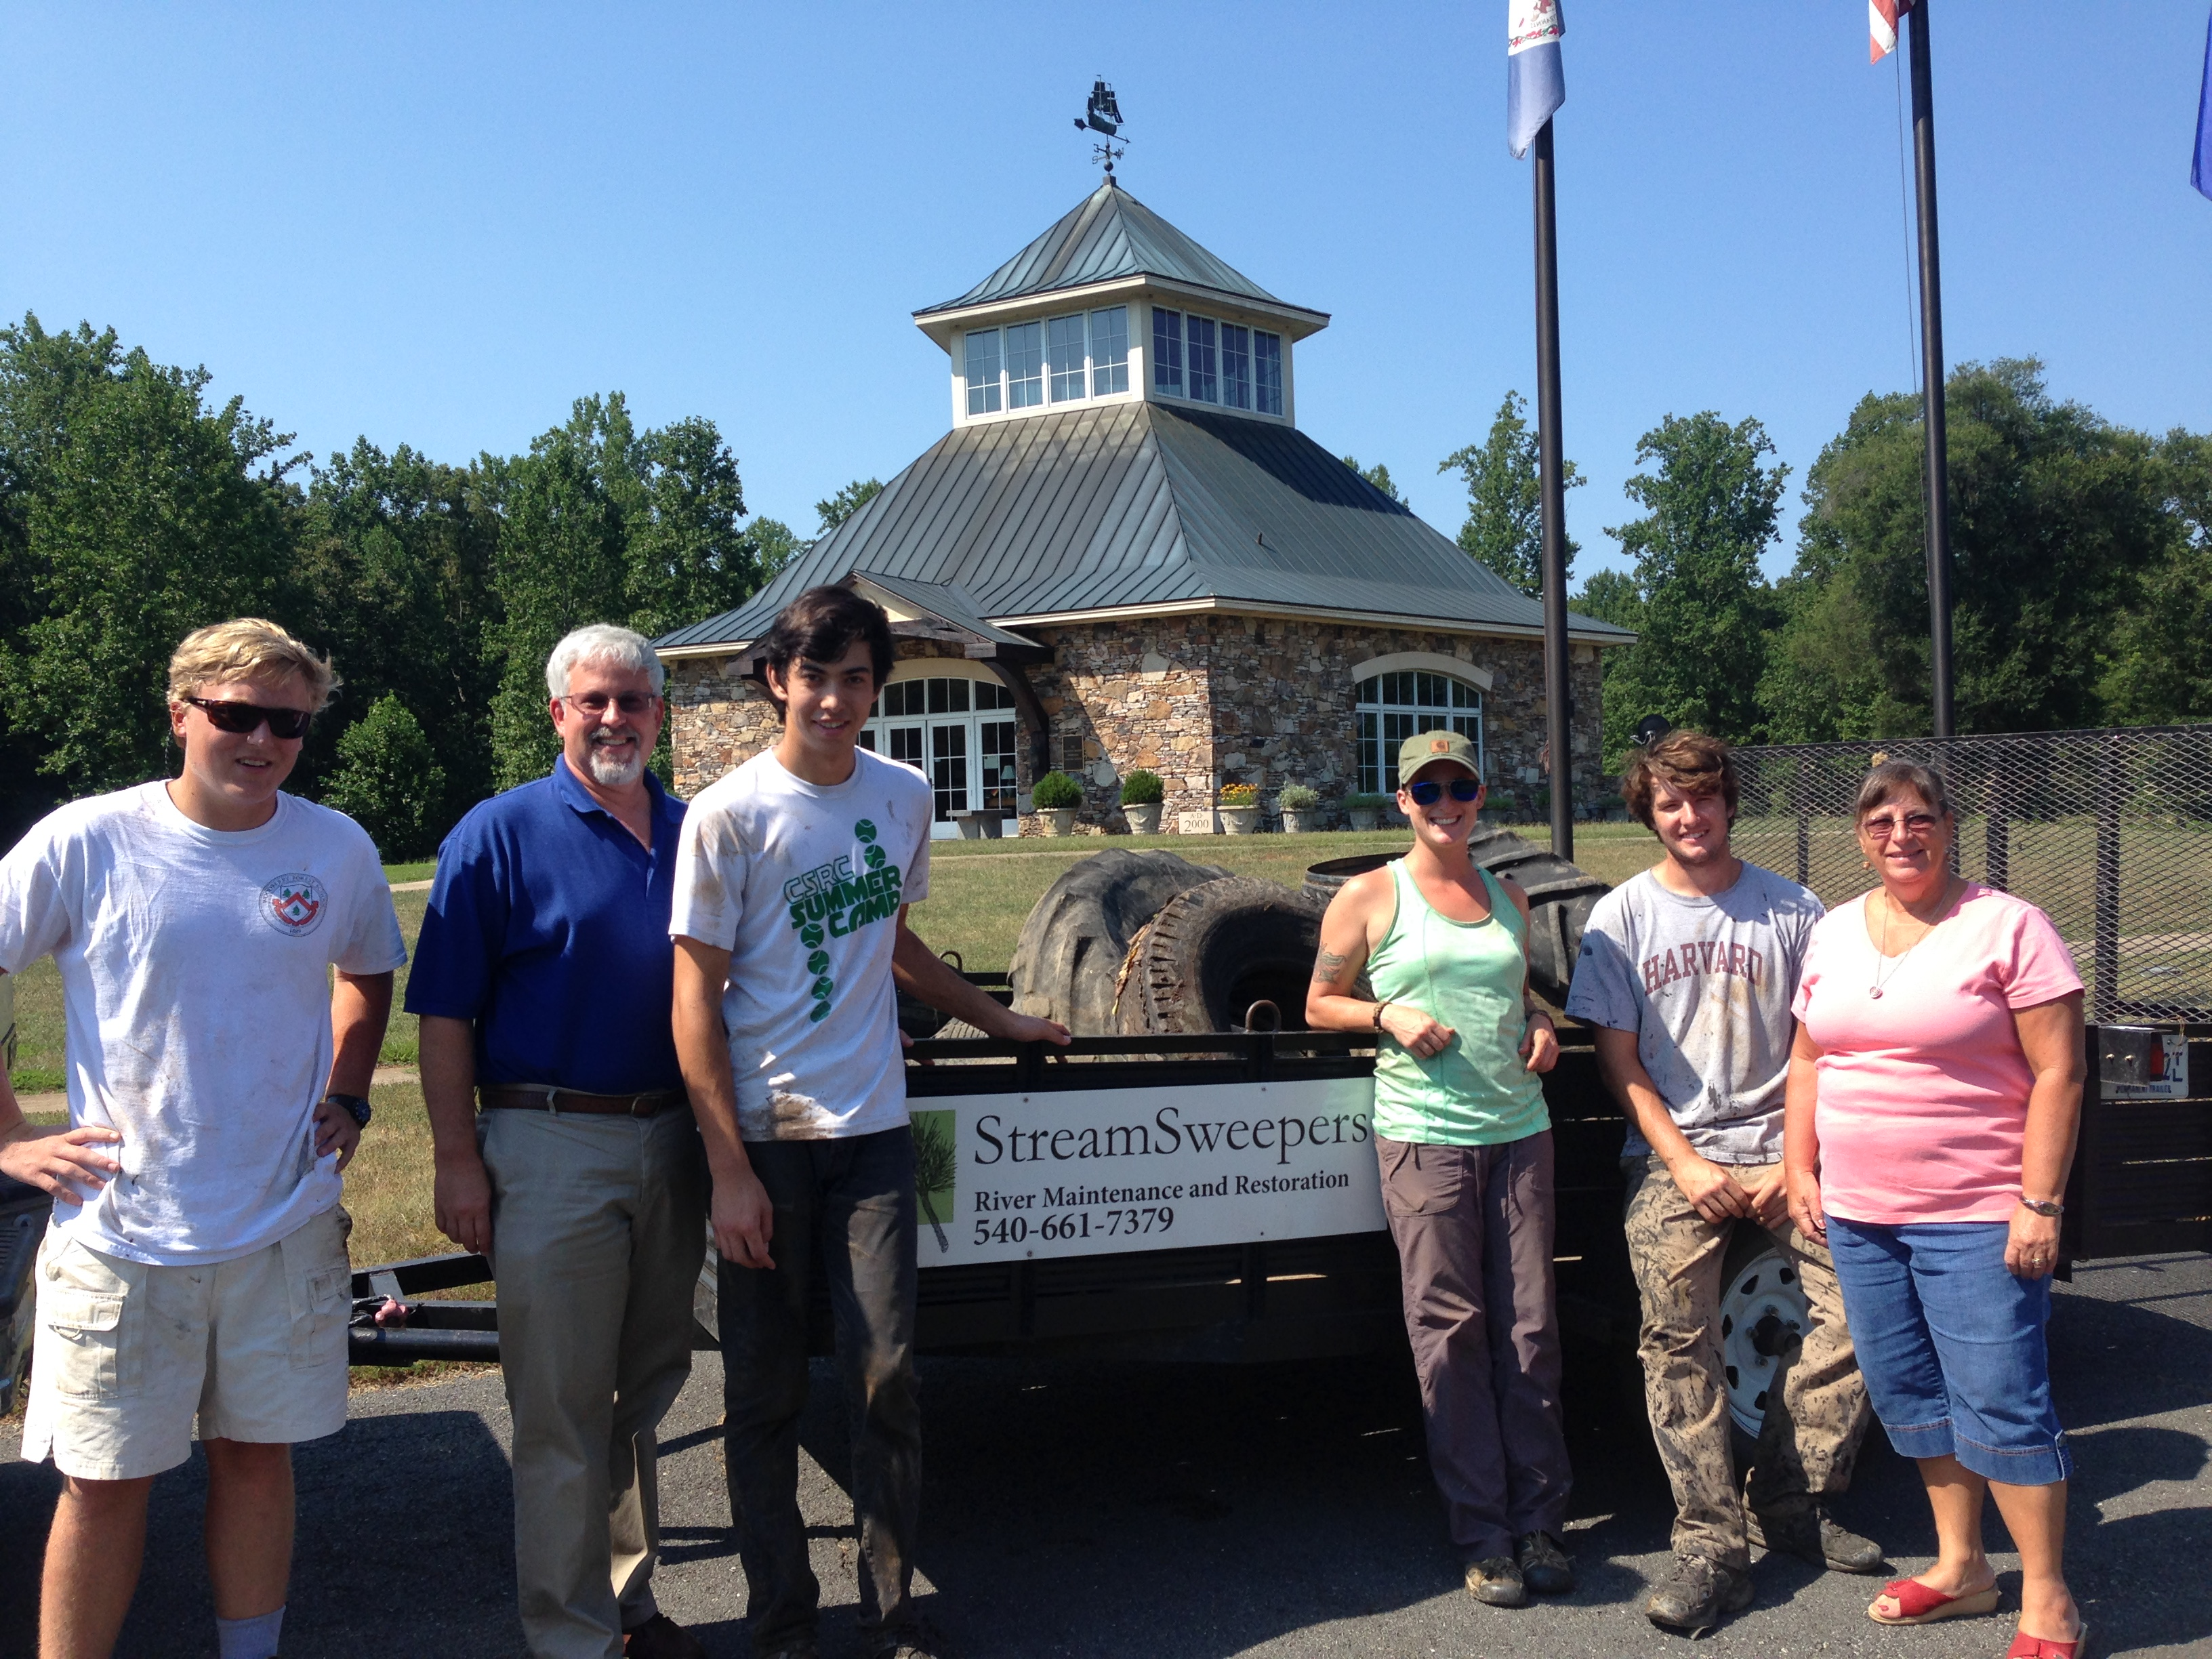 Staff of Germanna Foundation and StreamSweepers 2015 Crew, Locust Grove, VA